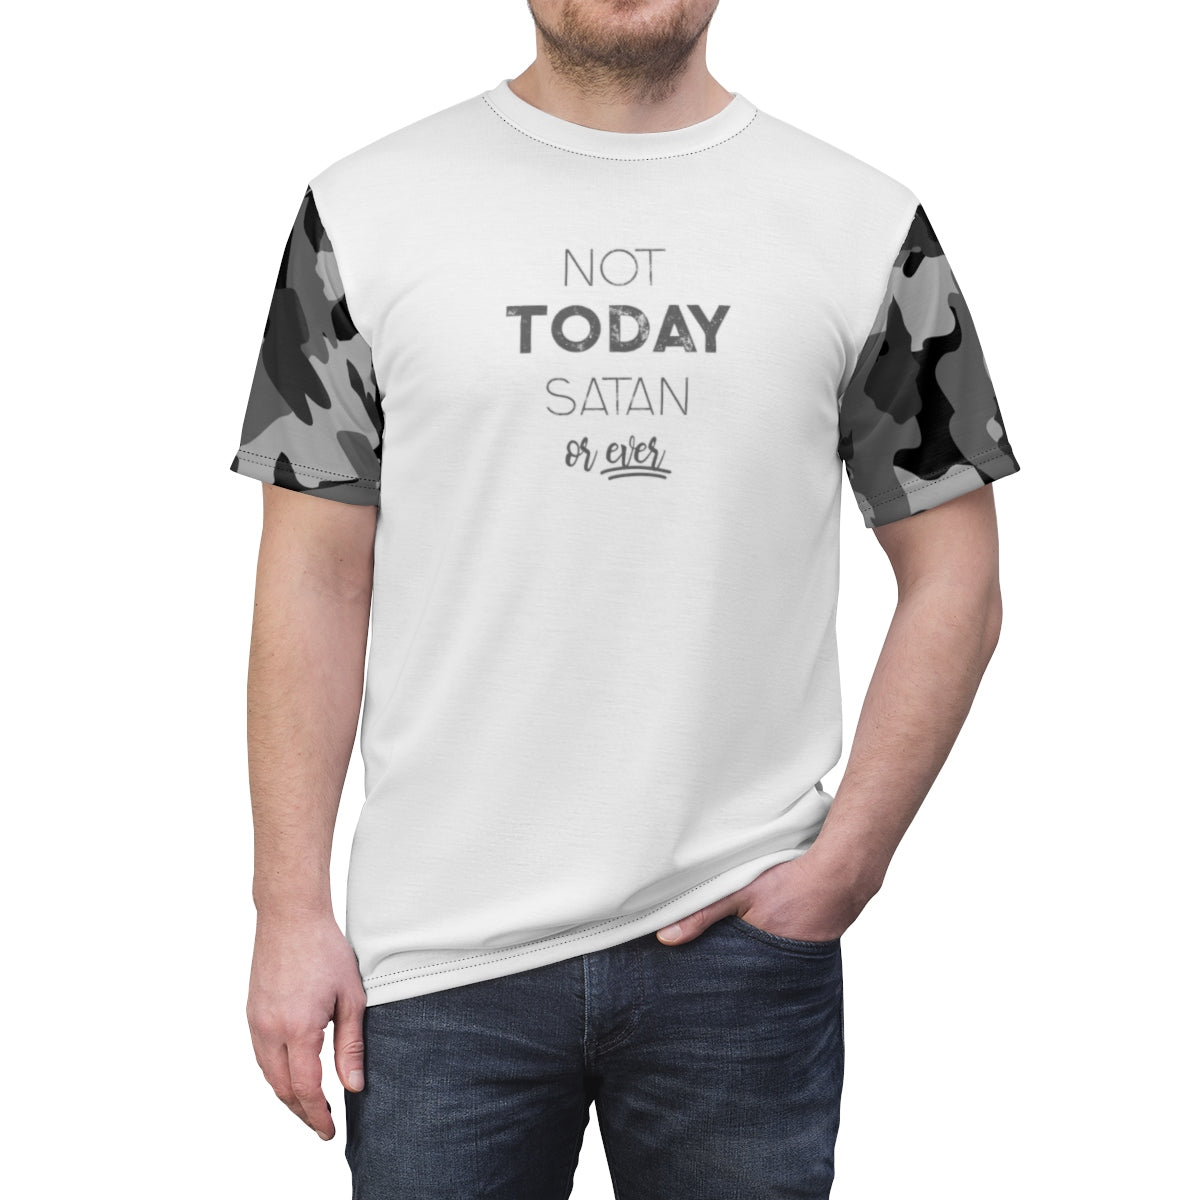 Not Today Satan Black Camouflage Unisex T-shirt, Camo Tee, AOP - skyrockettees